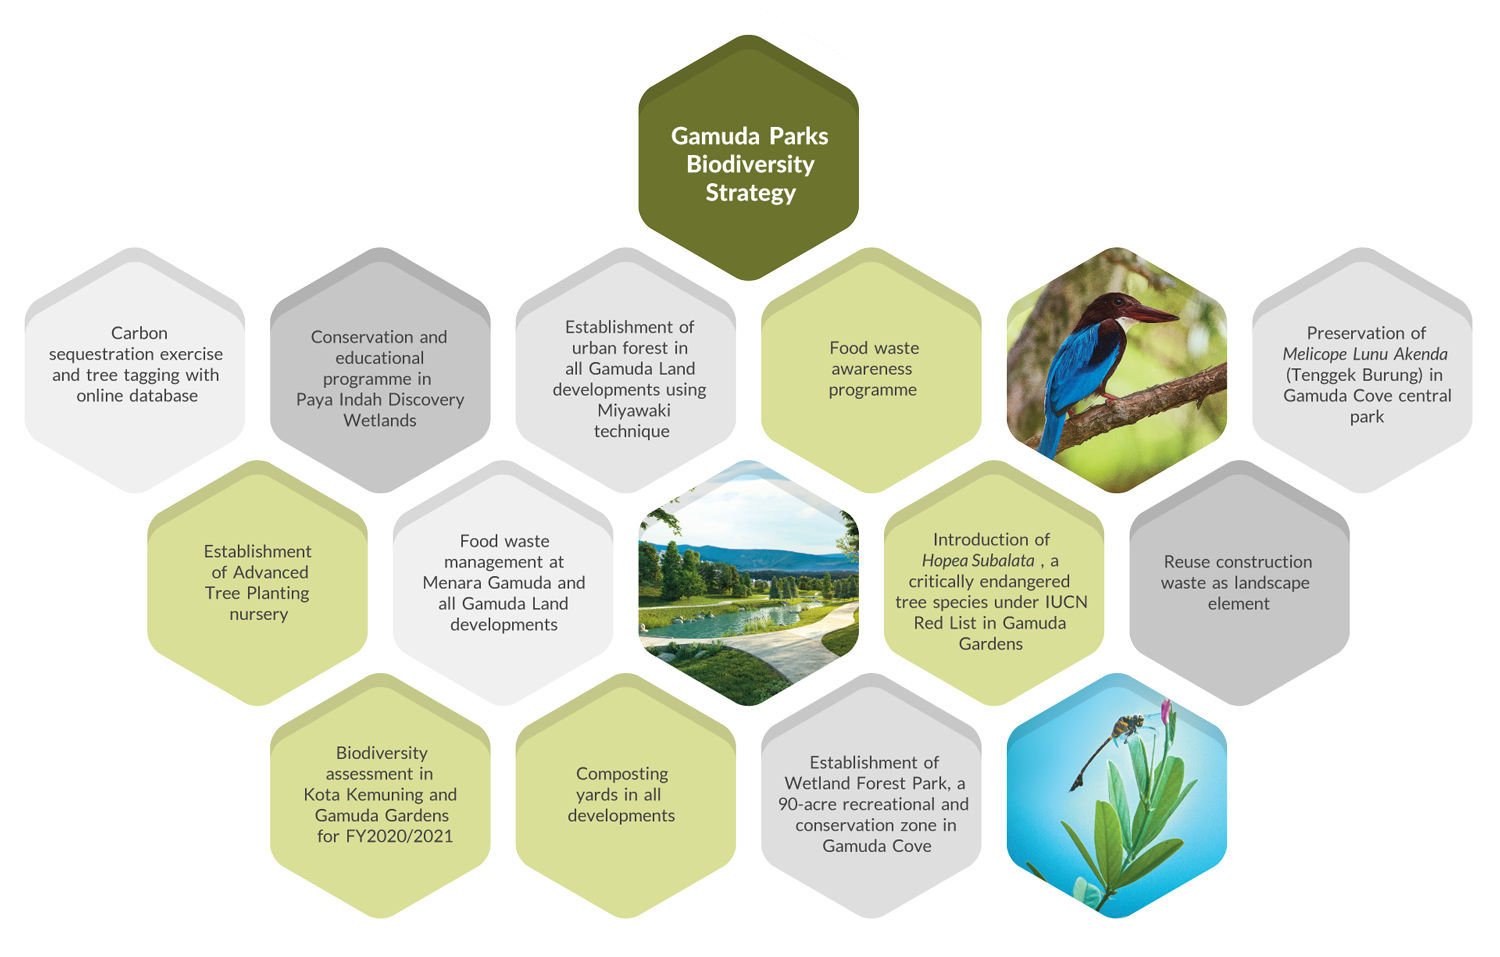 Environmental and Biodiversity Conservation